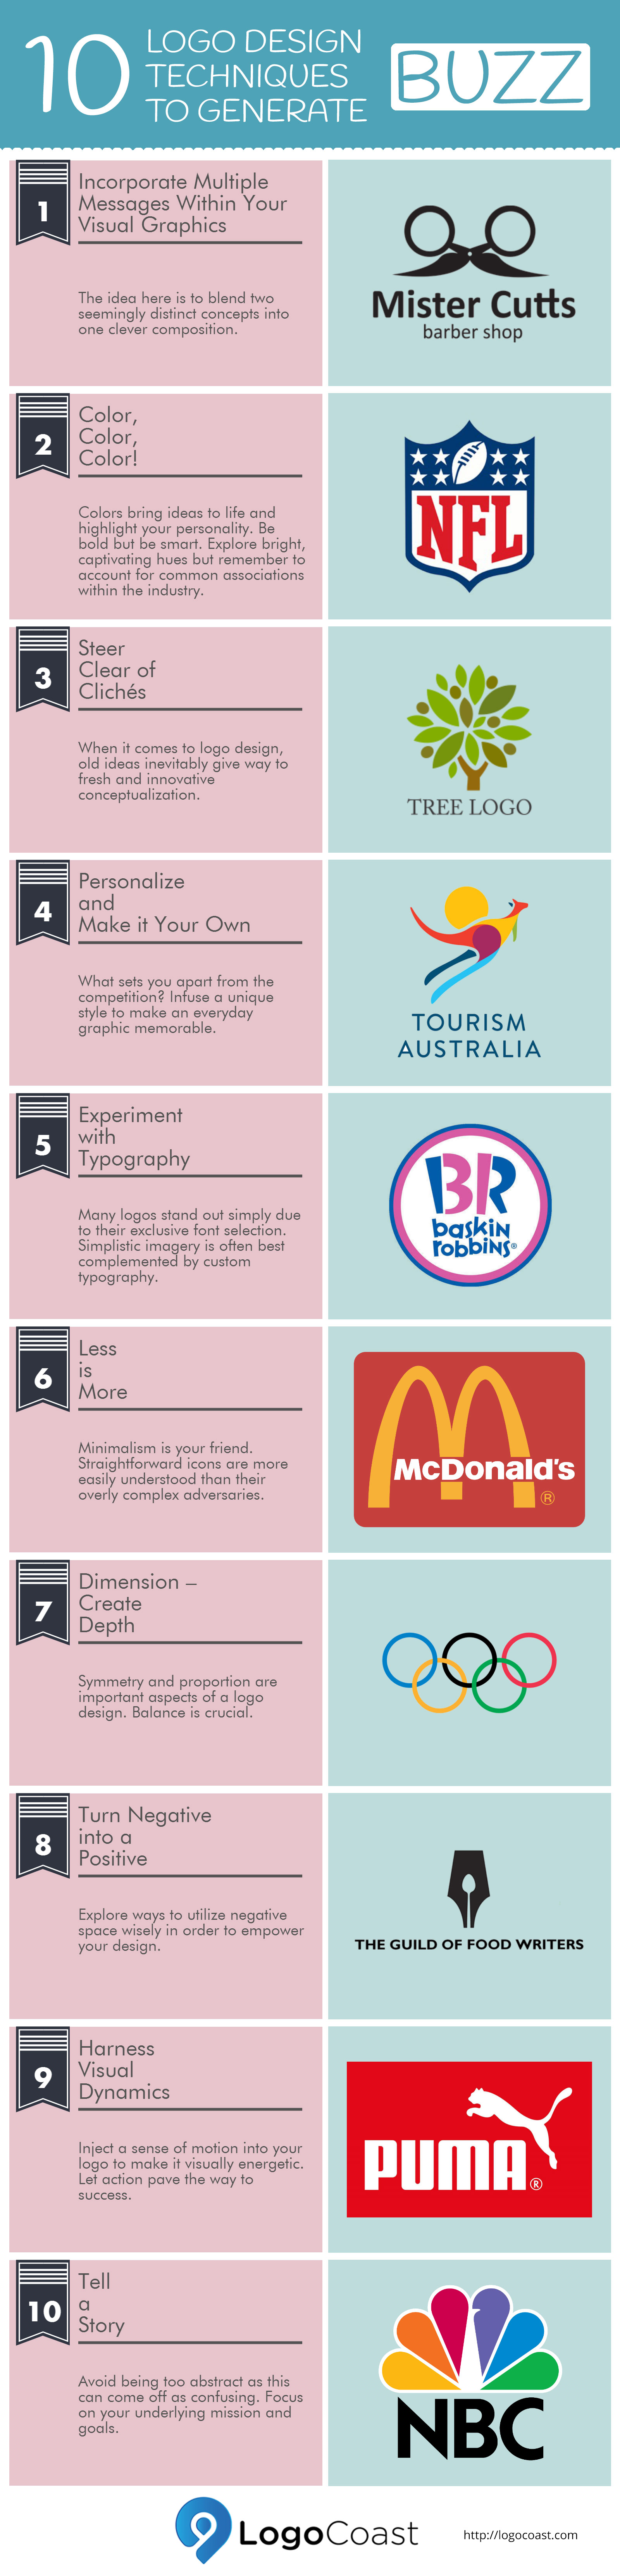 10 Logo Design Techniques to Generate Buzz (Infographic)